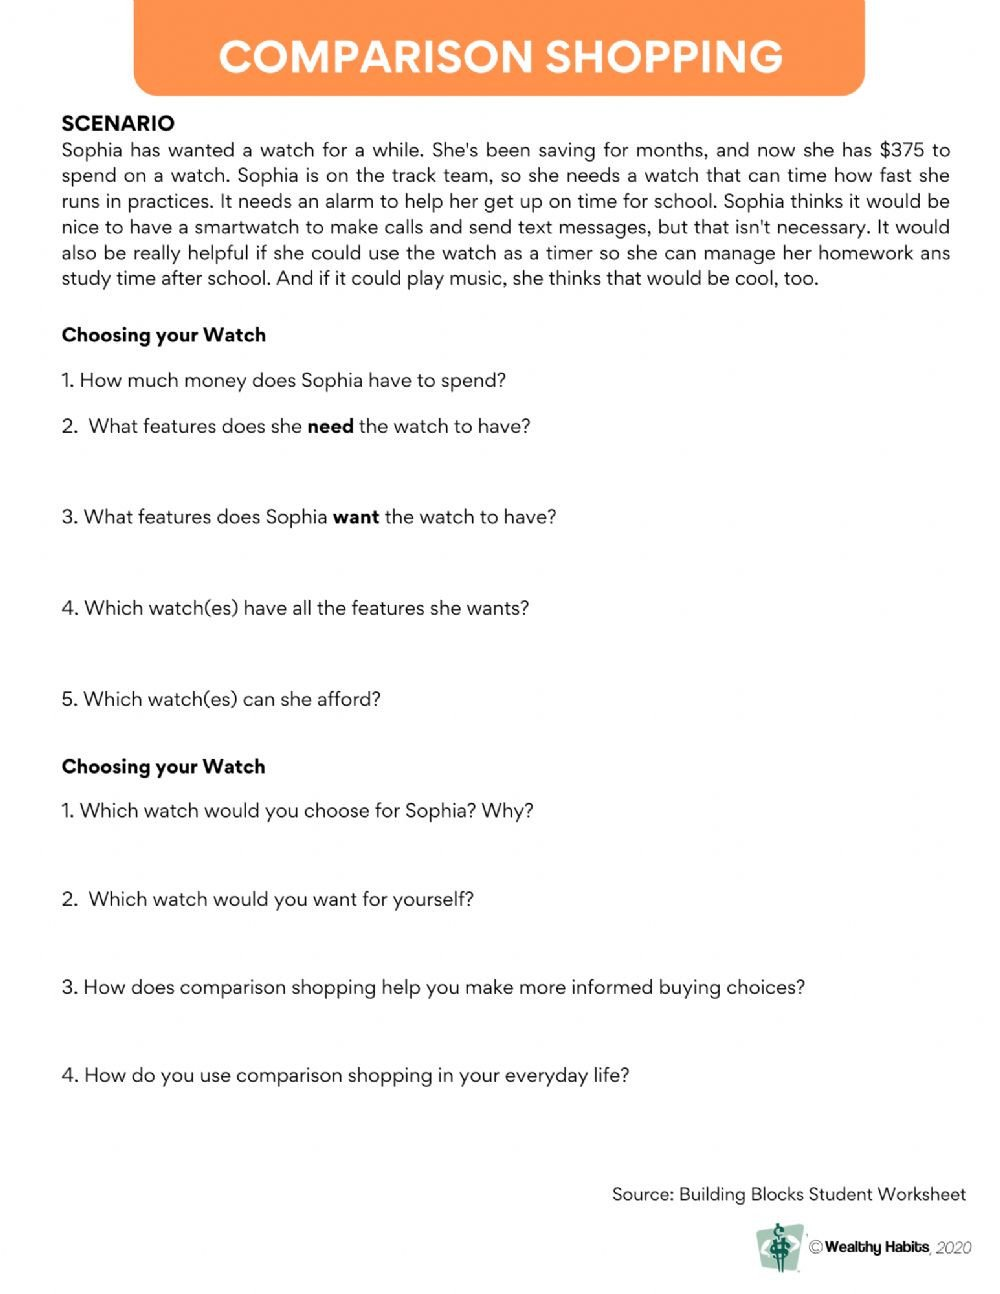 Comparison Shopping Worksheets for Students Wealthy Habits Parison Shopping Interactive Worksheet